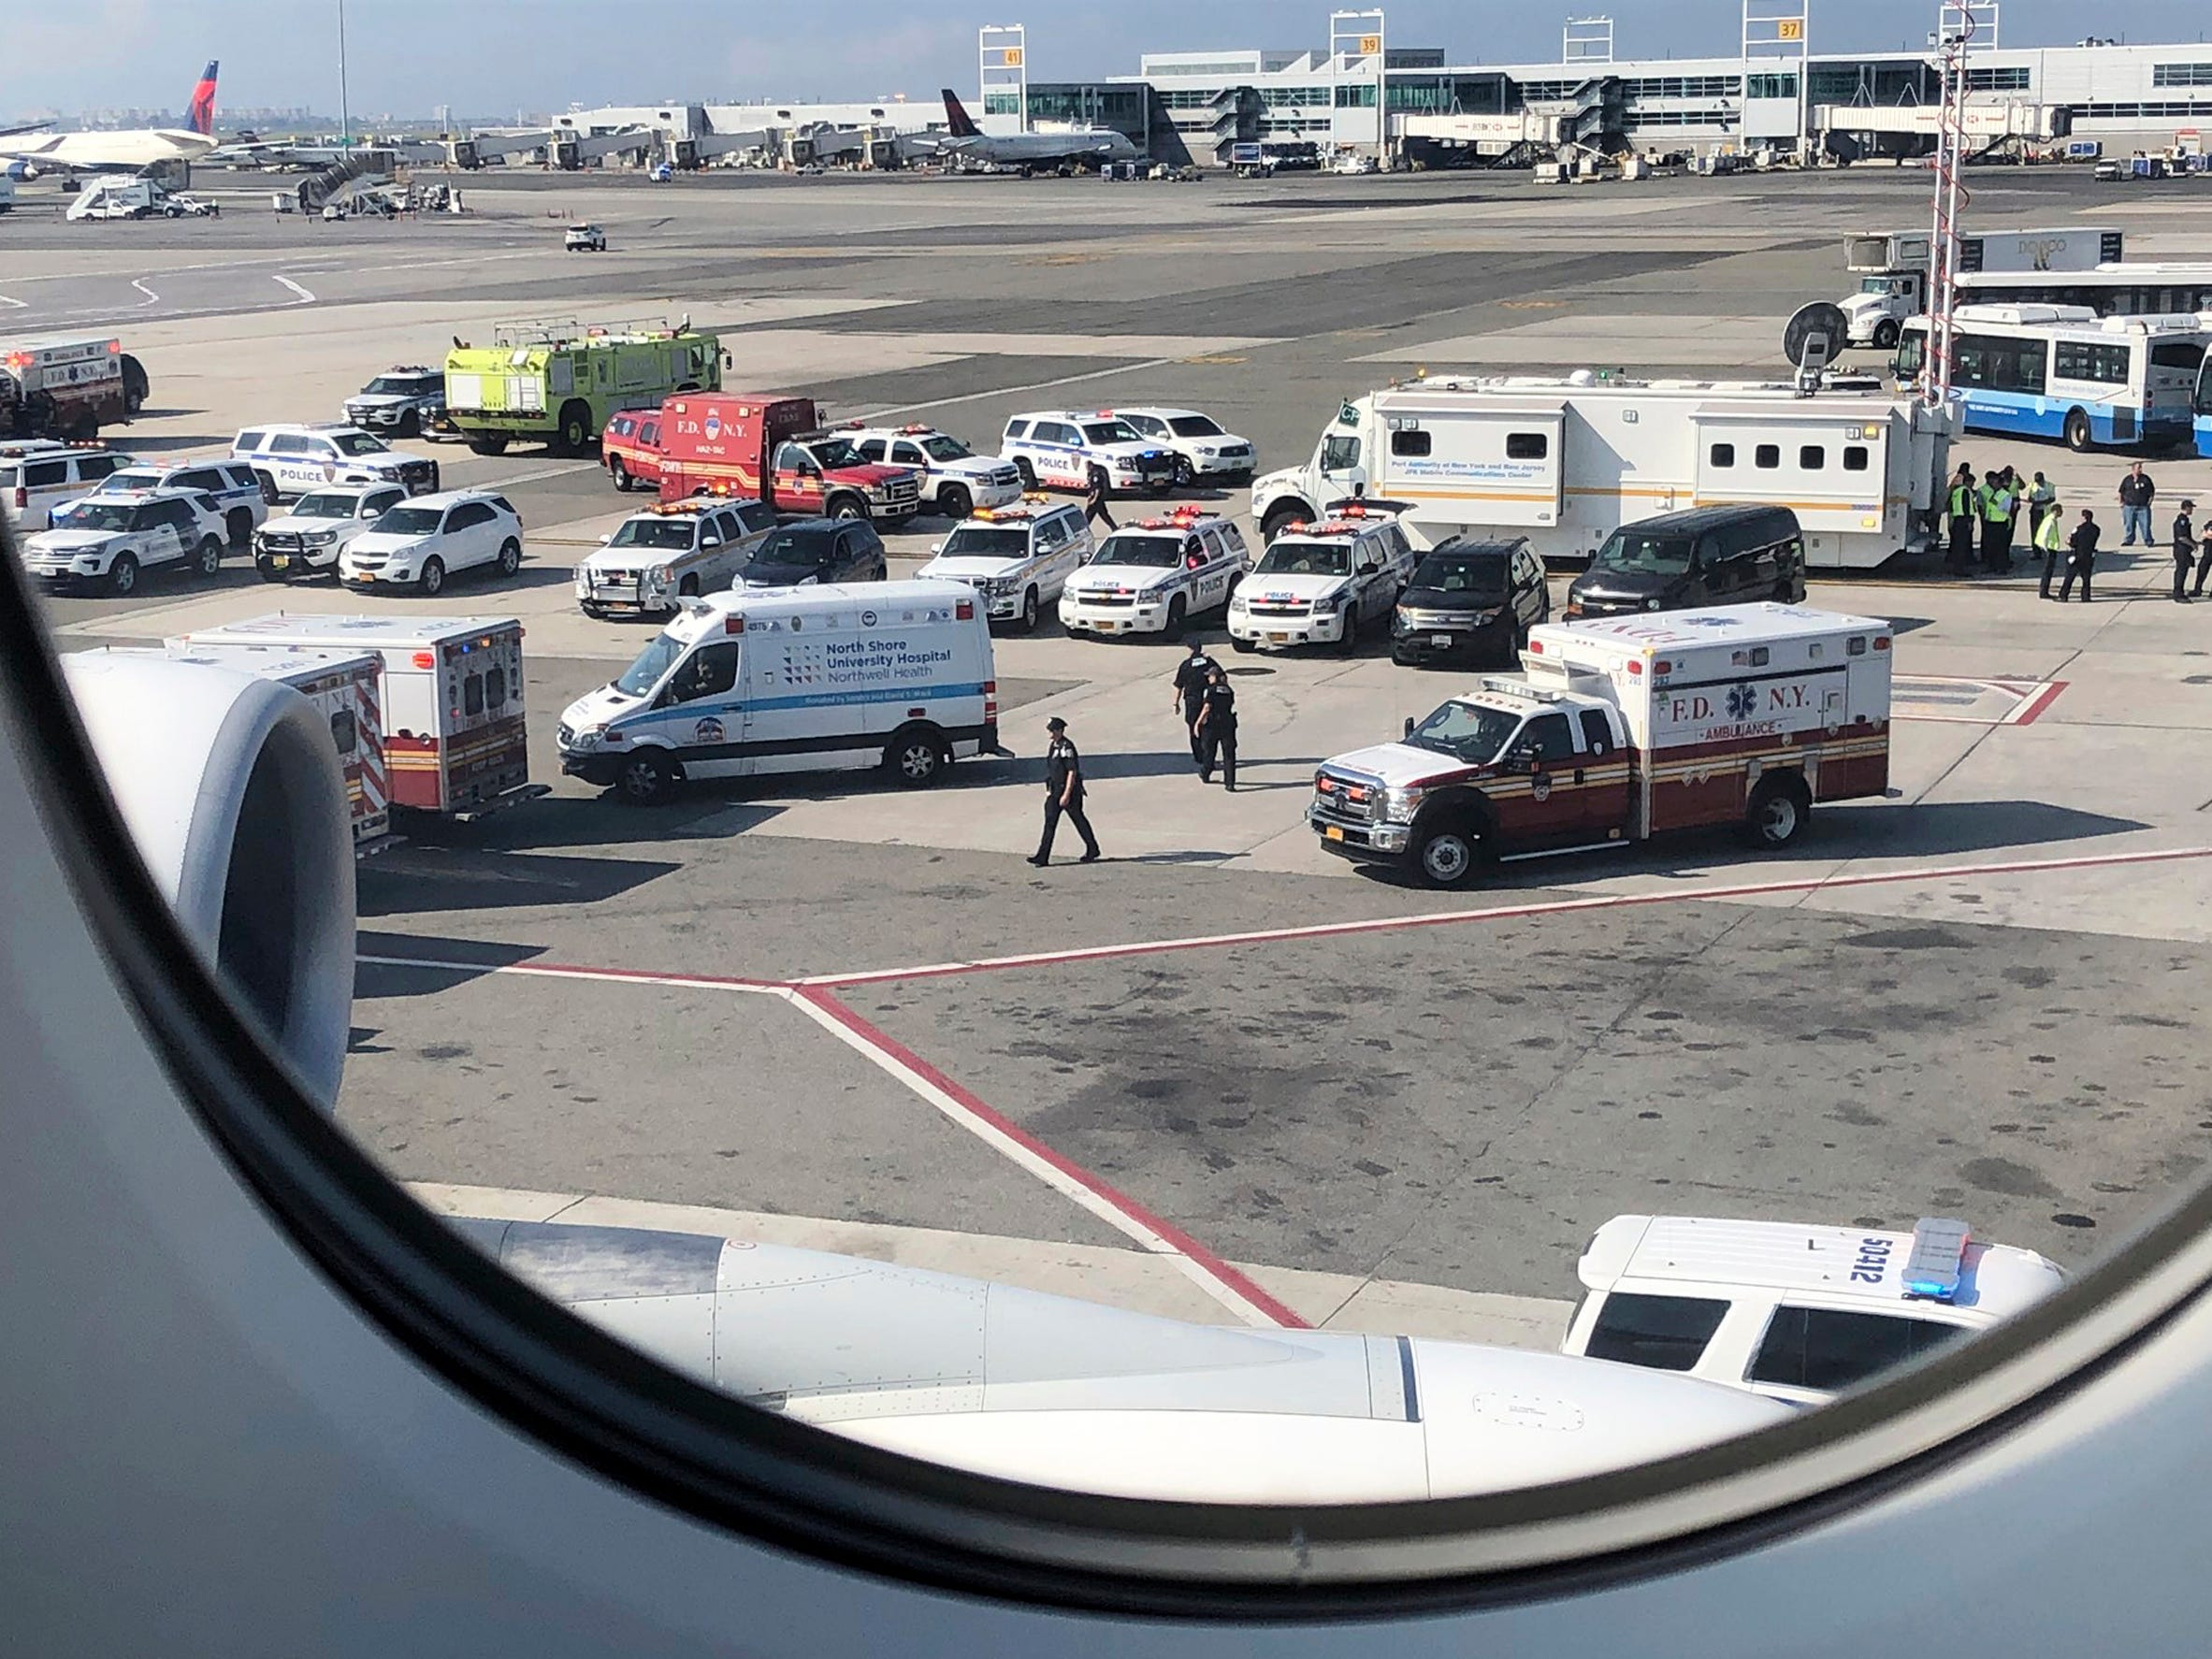 Emergency response crews gather outside a plane at New York's Kennedy Airport amid reports of ill passengers aboard a flight from Dubai, Sept. 5, 2018.